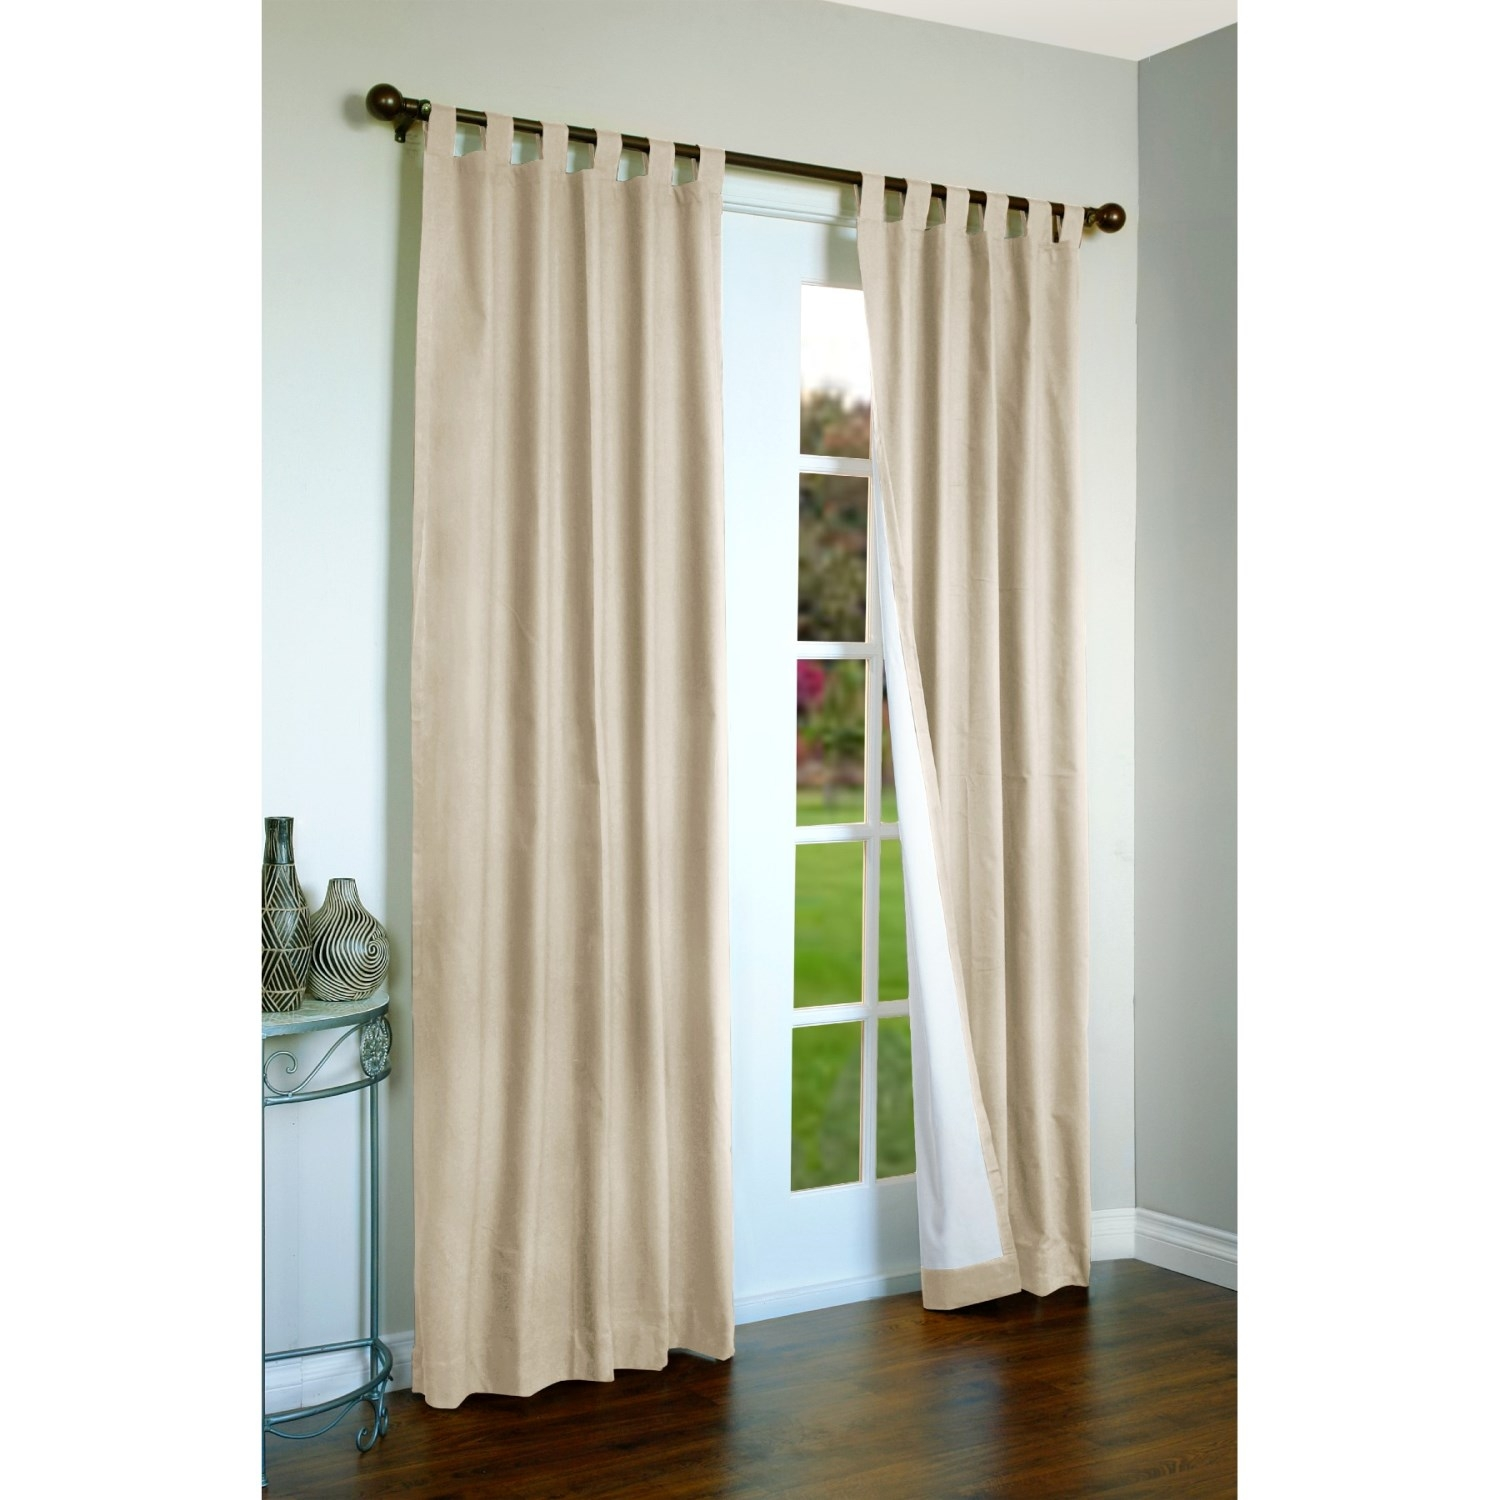 Sliding Glass Door Drapes Roselawnlutheran Throughout Sliding Glass Door Curtains (Image 19 of 25)